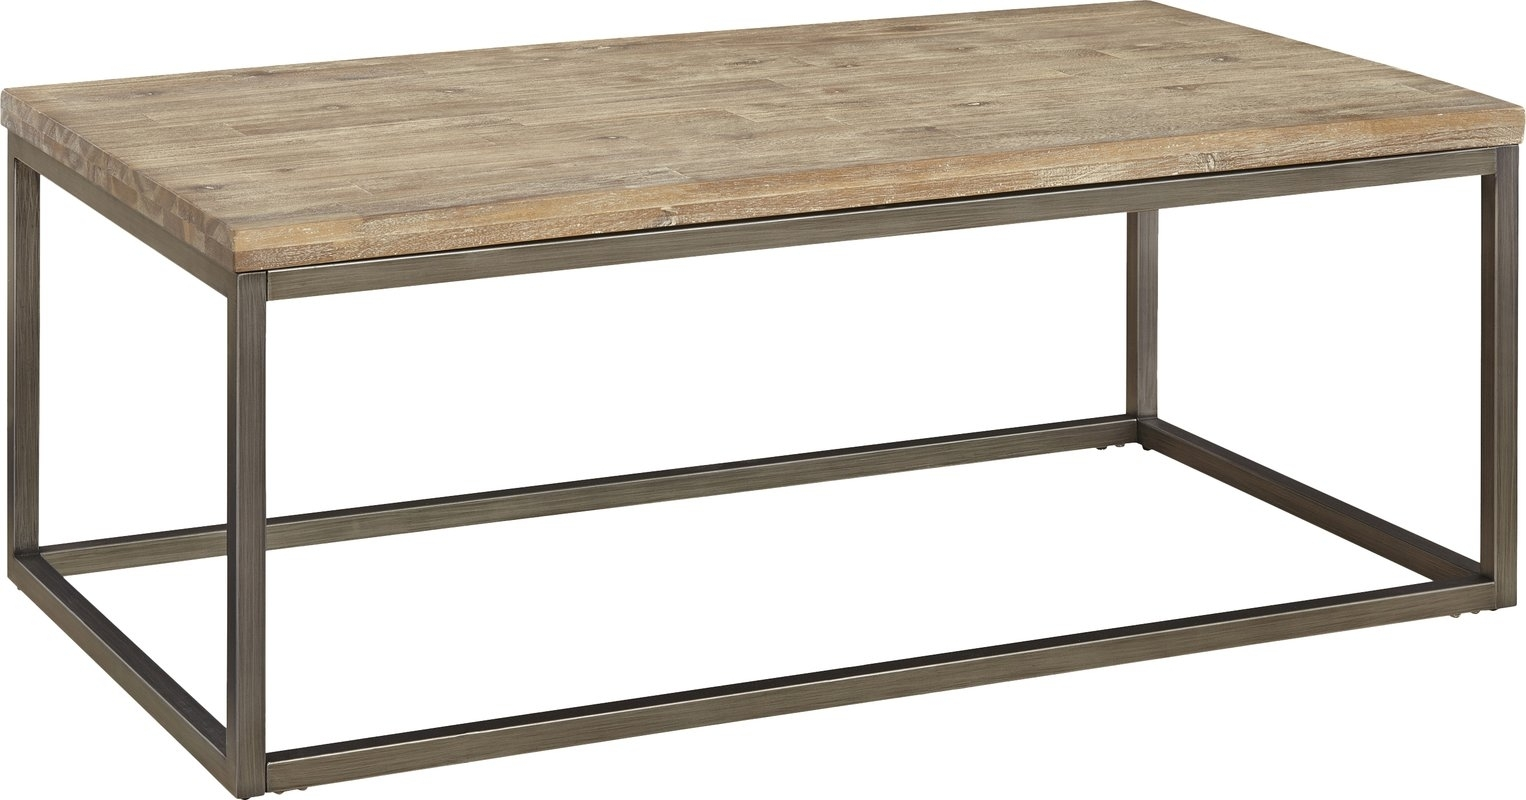 Helpful Uses Of A Modern Coffee Table With Storage - Furnish Ideas throughout Element Ivory Rectangular Coffee Tables (Image 11 of 30)